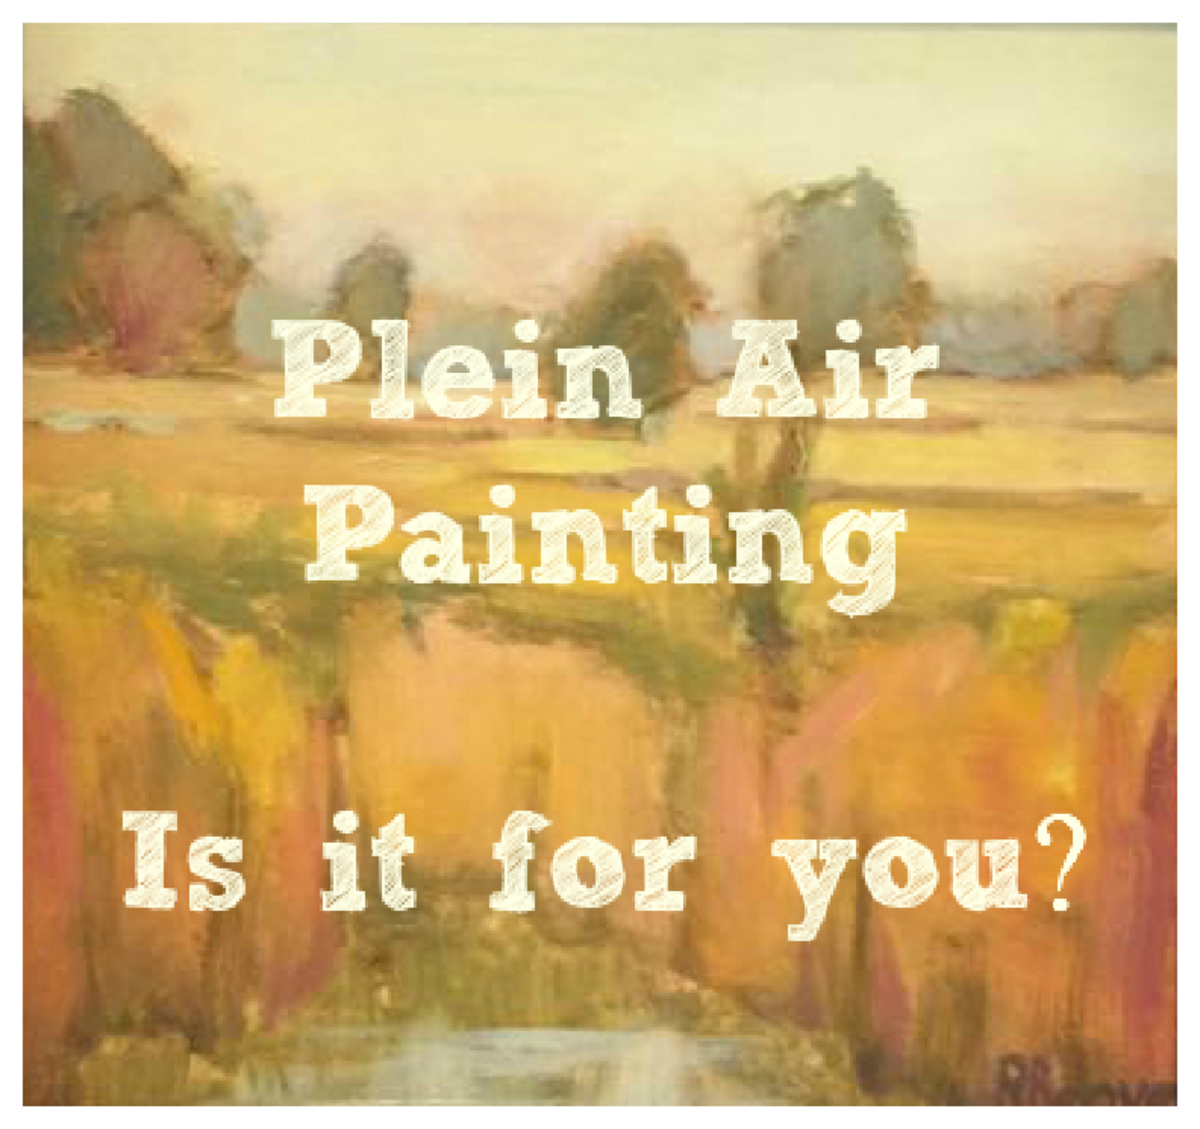 Advantages and Challenges of Plein Air Painting - Is It for You?